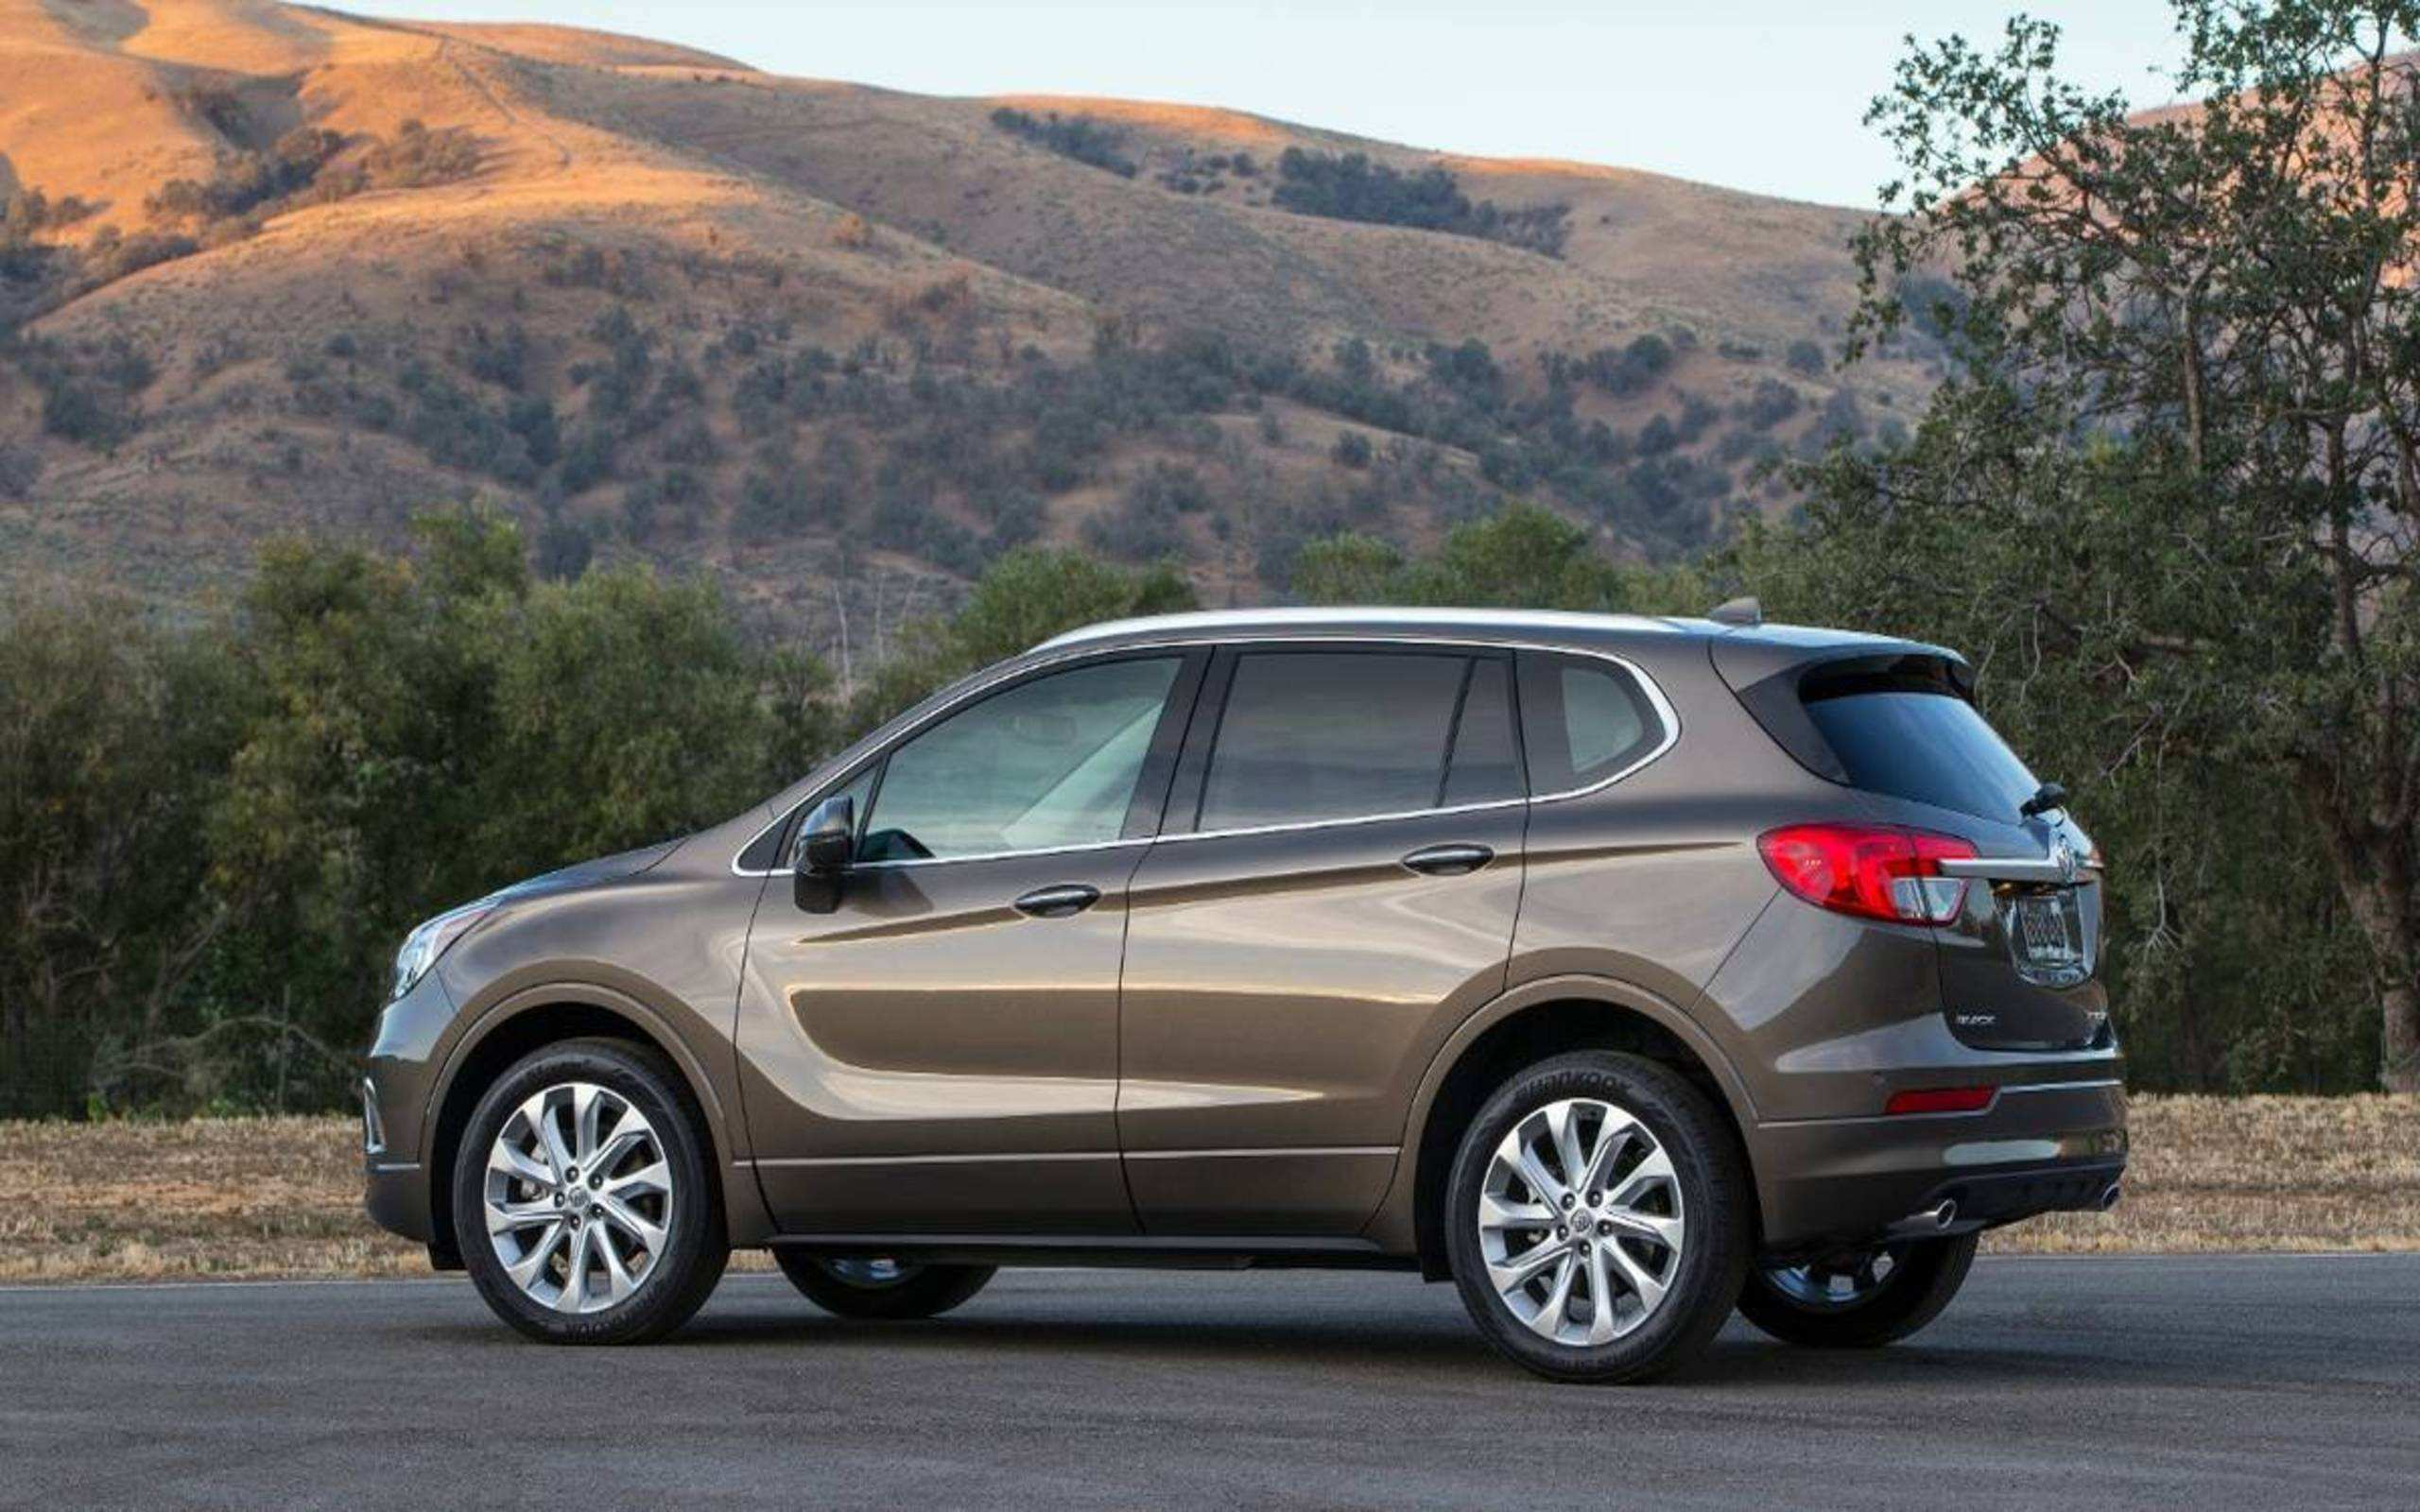 46 All New 2019 Buick Envision Price And Release Date